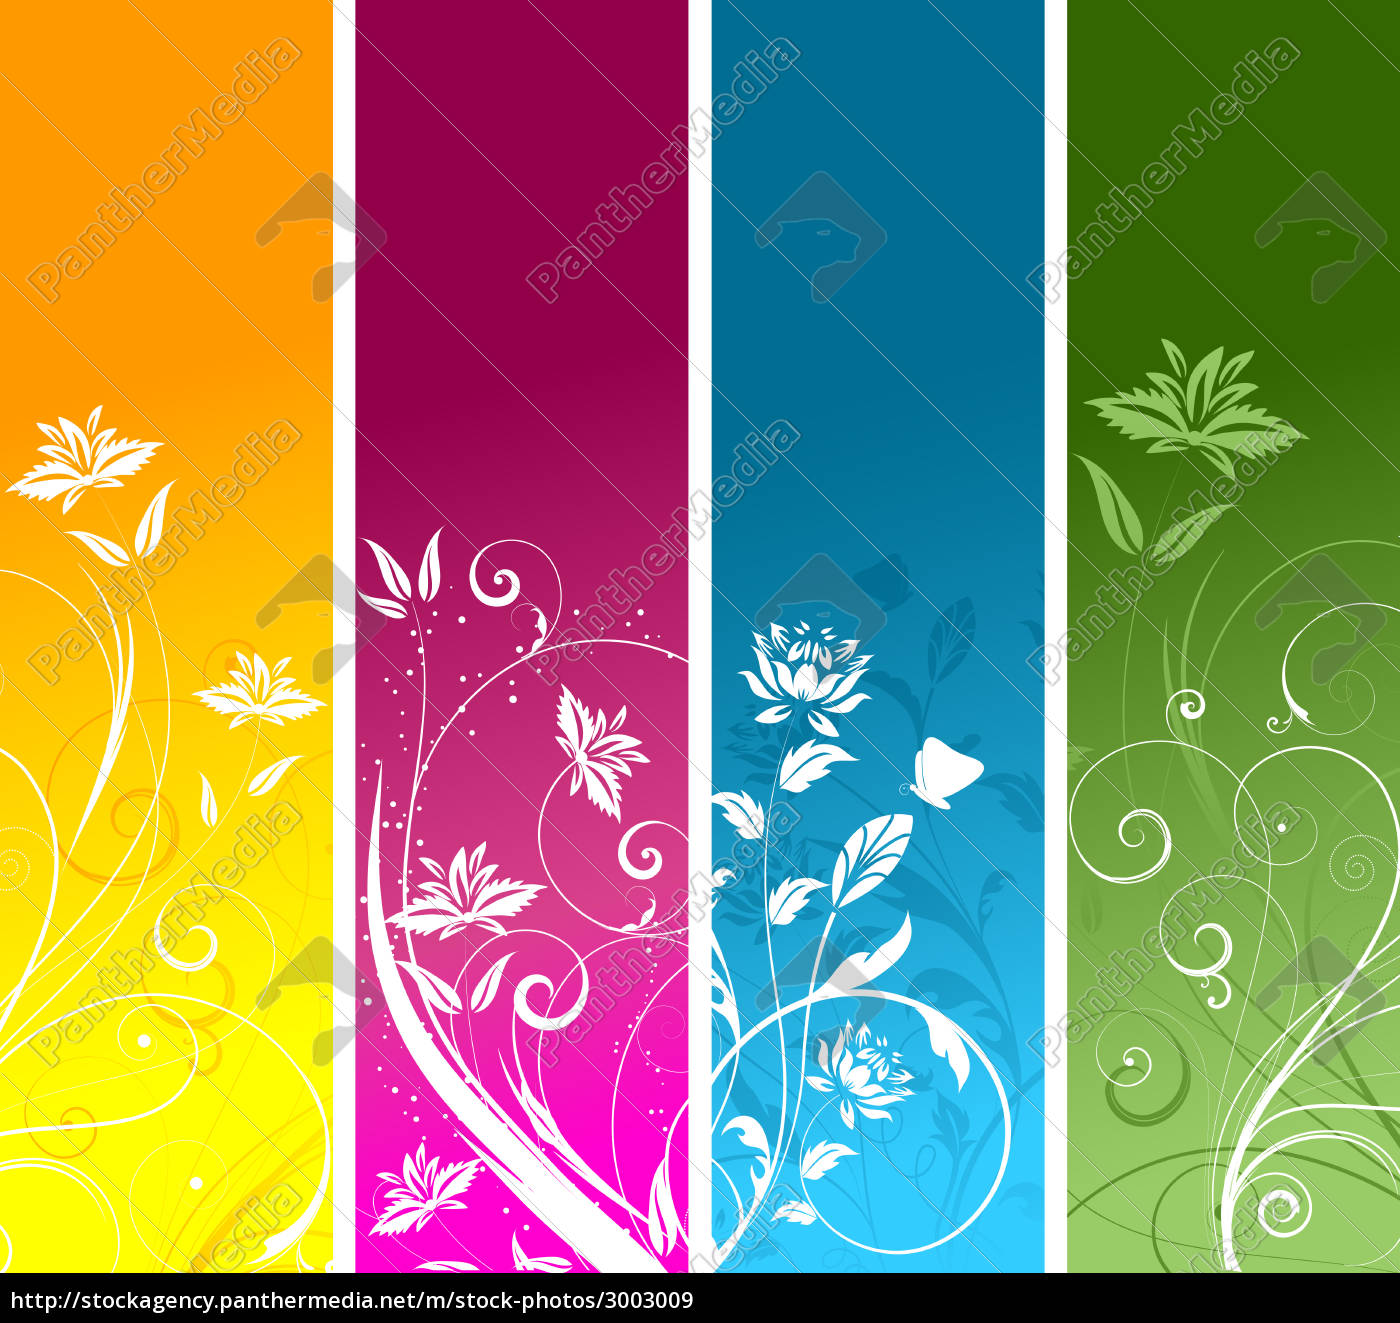 leaf, flower, plant, ornate, banner, abstract - 3003009